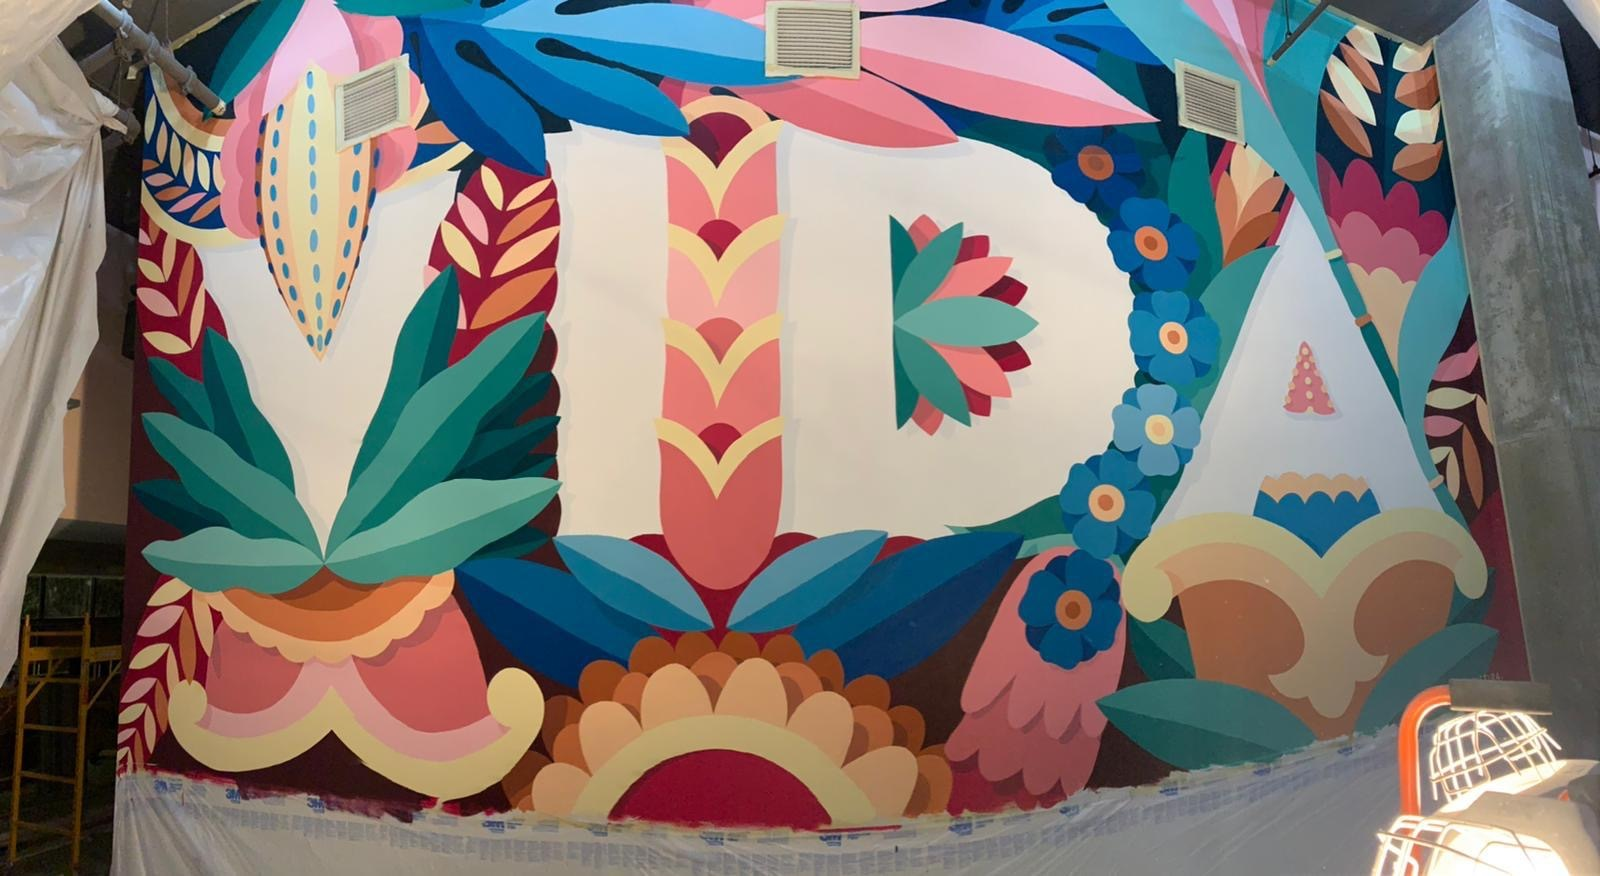 """An unfinished mural with the word """"Vida"""" surrounded by tropical flowers and plants"""